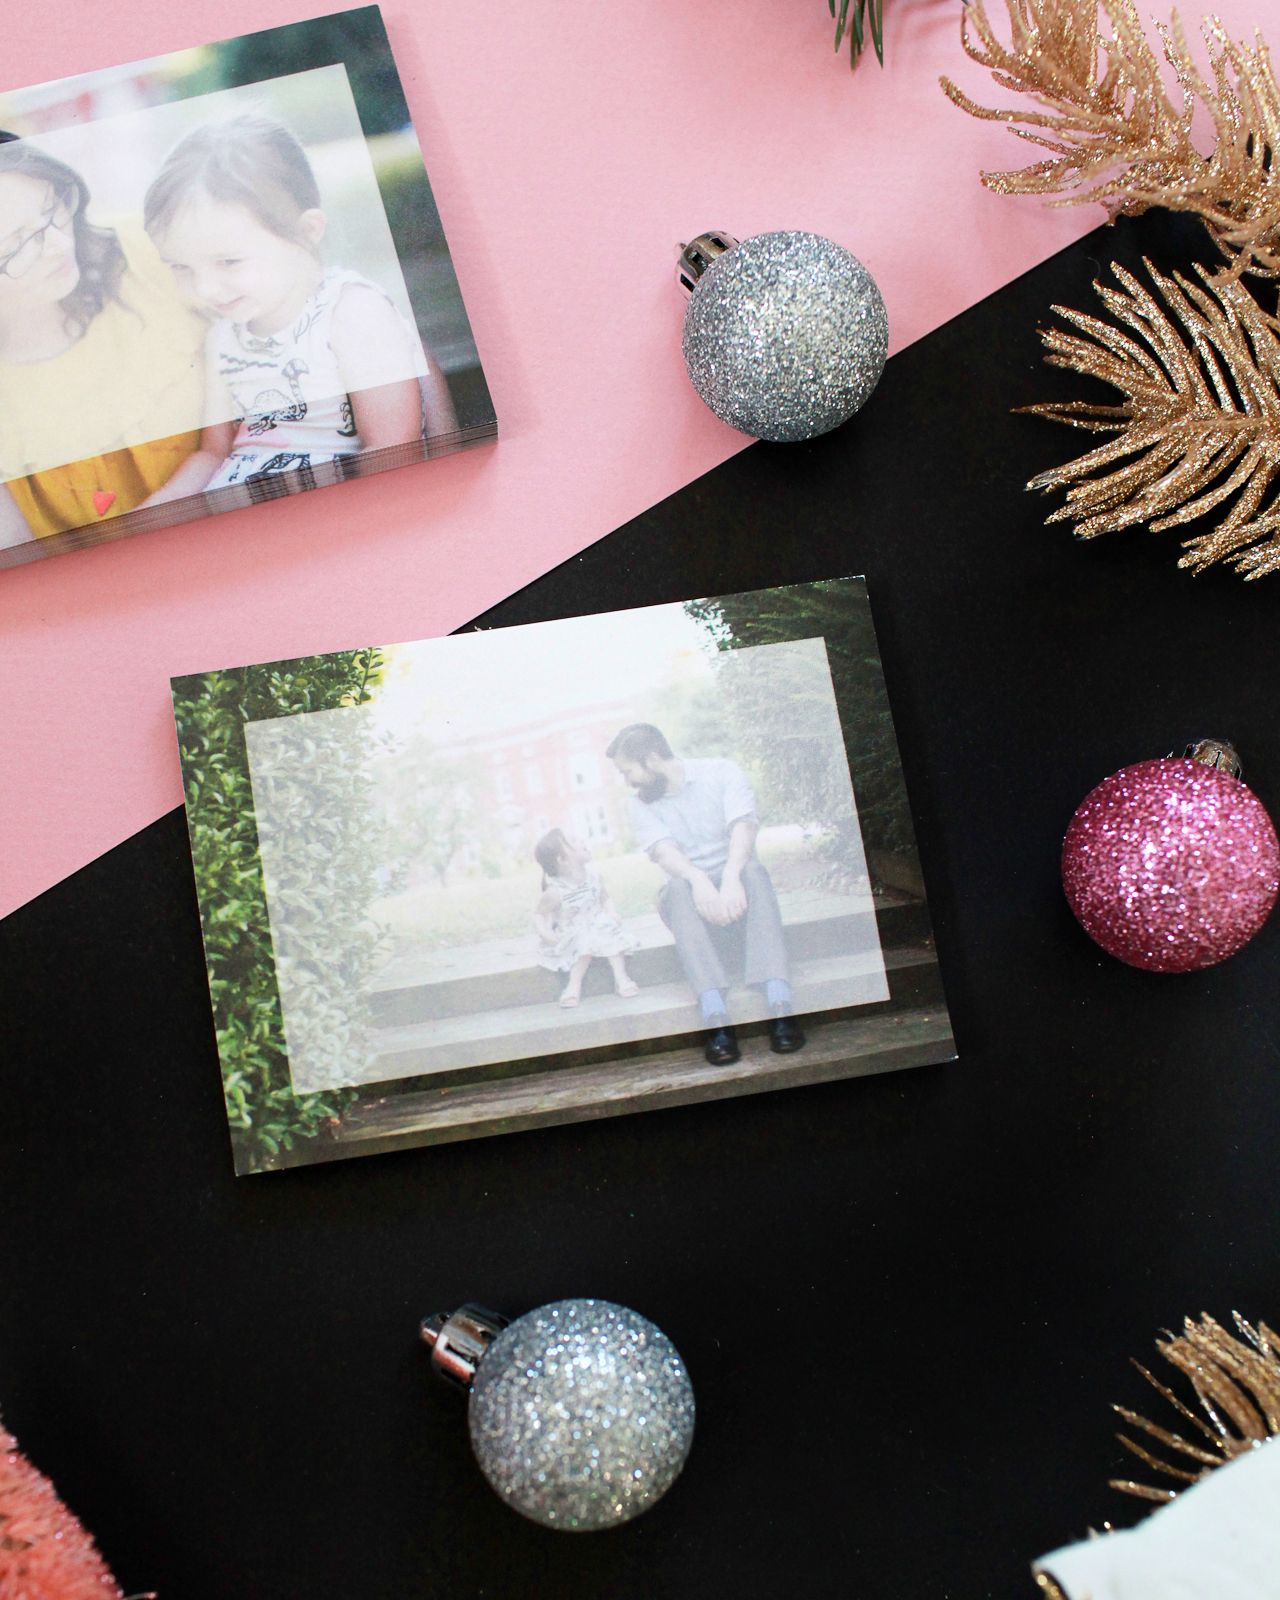 Personalized and Photo Holiday Gifts with Zazzle